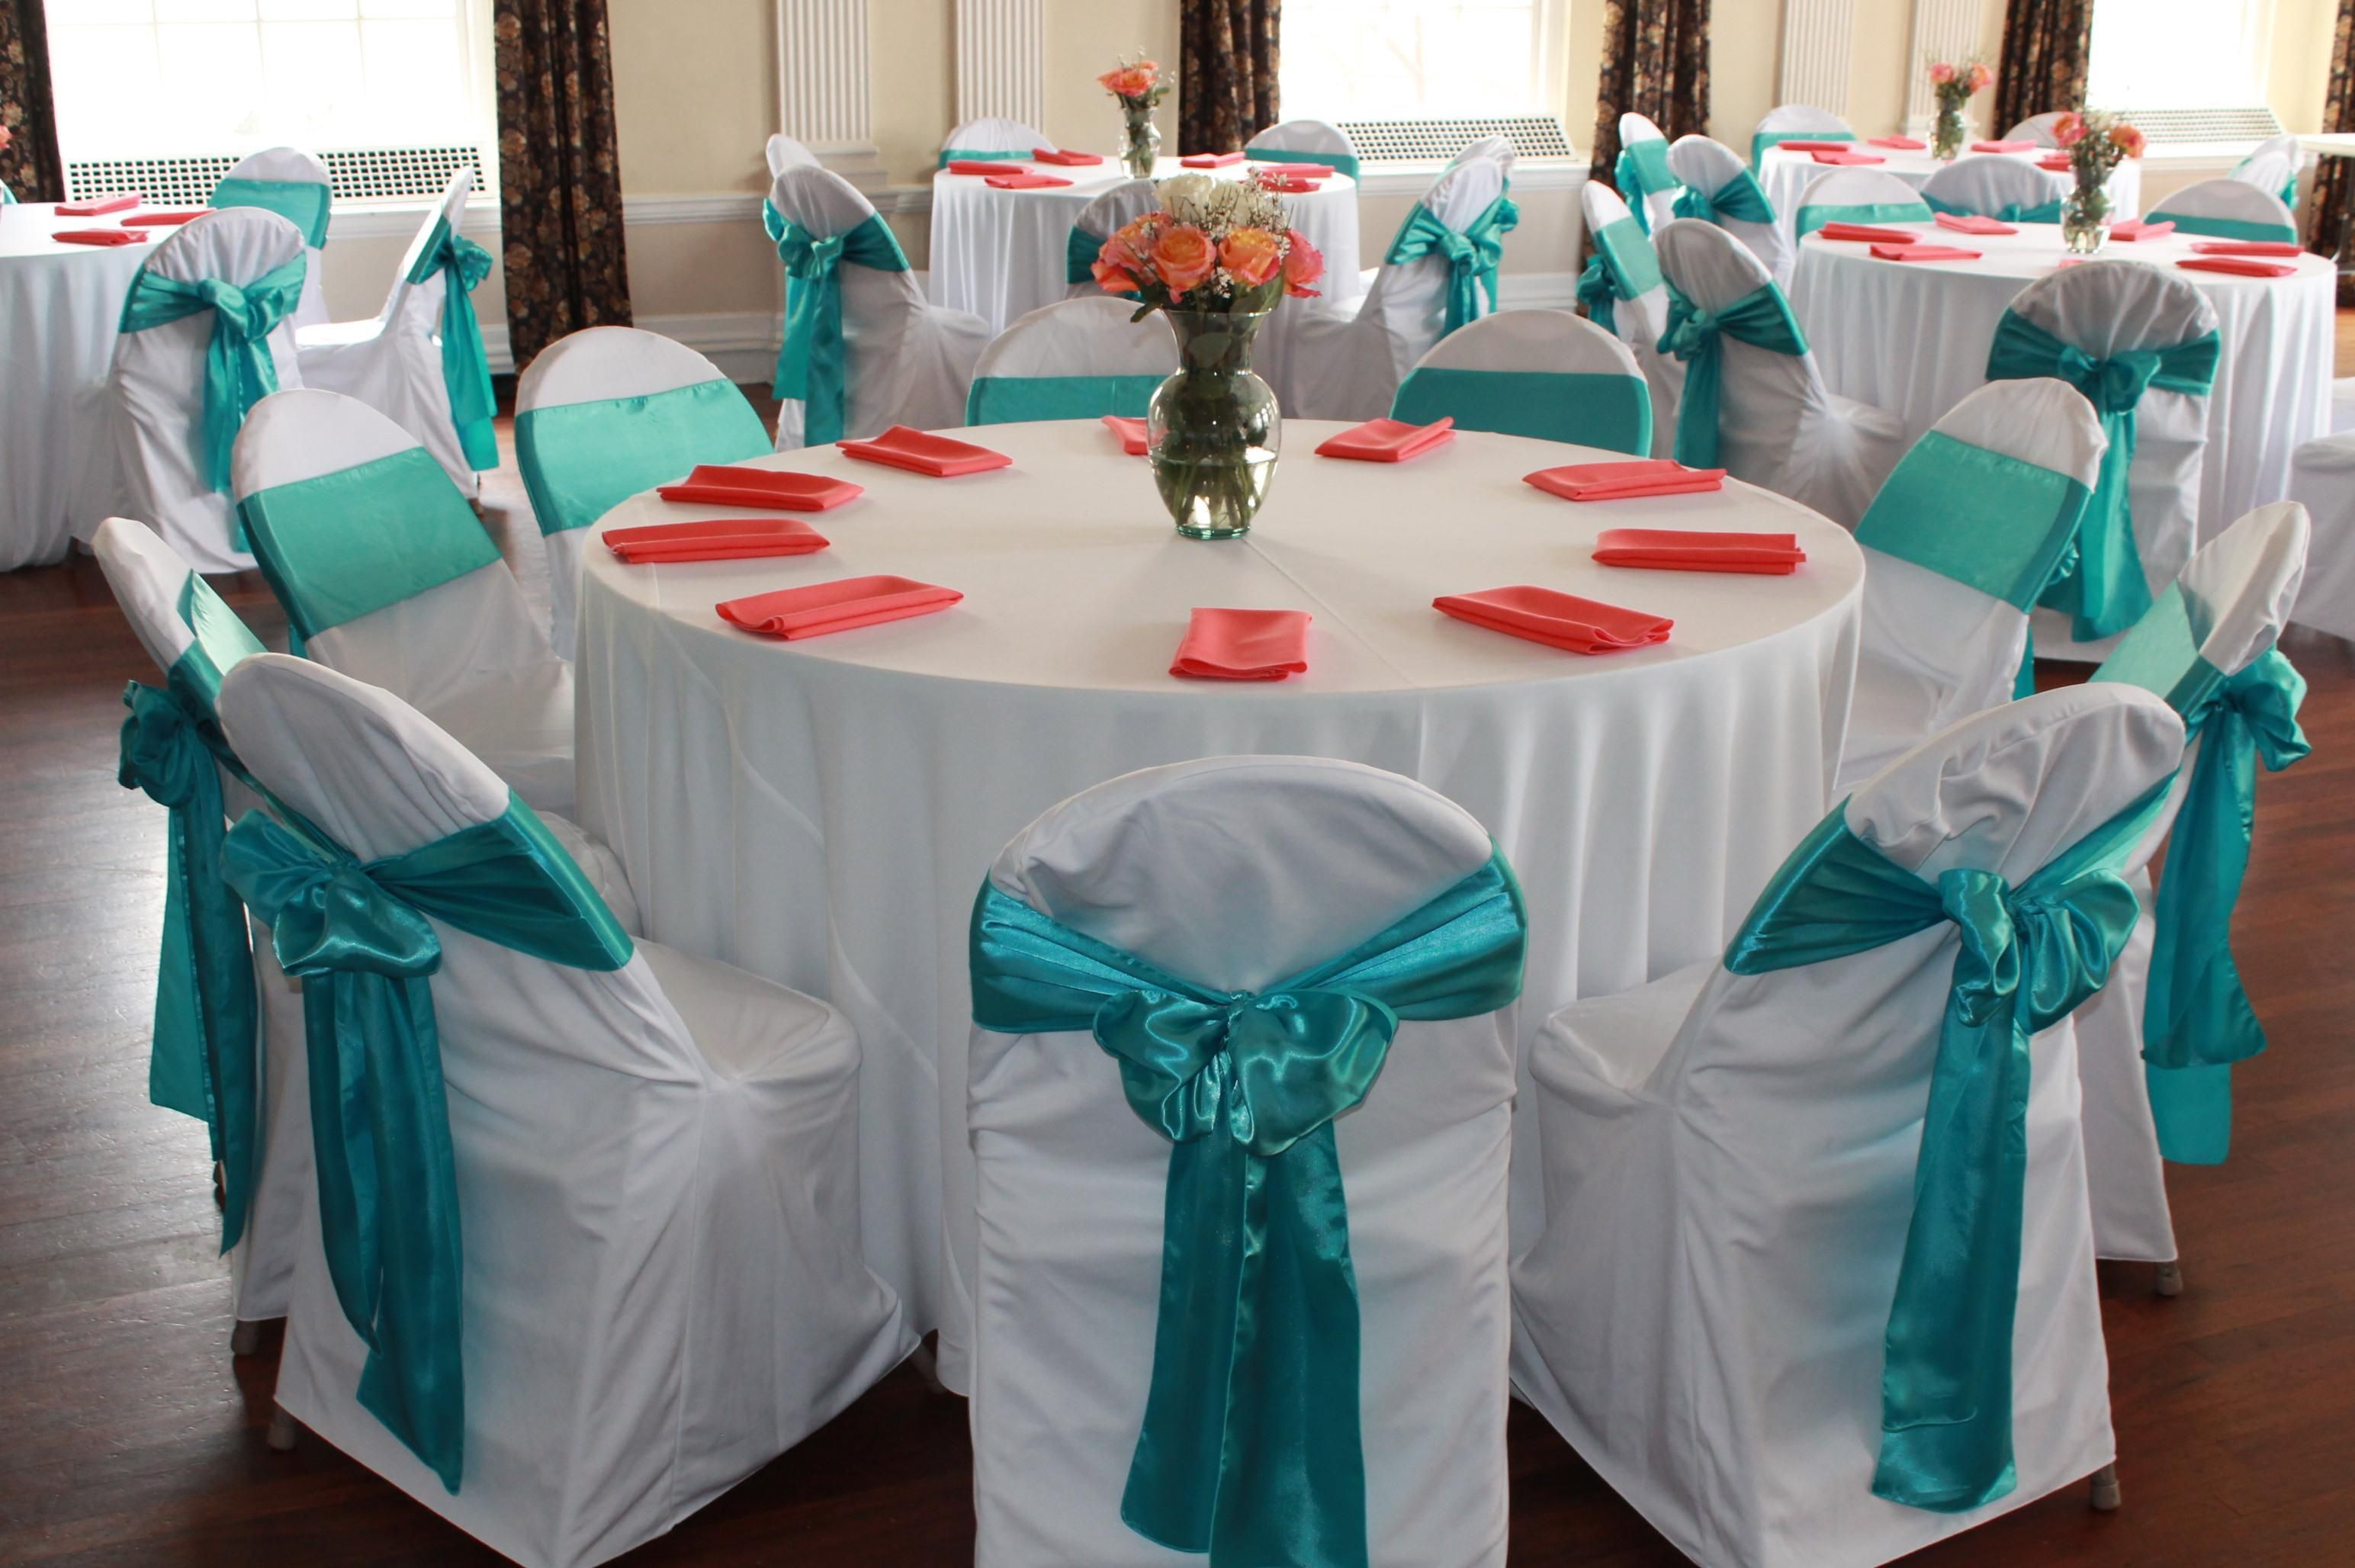 Simply Elegant Chair Covers And Linens Lycksele Bed Turquoise Satin Sash In 2019 Sashes Wedding Check Out Llc Has Always Been Preferred By Planners Event